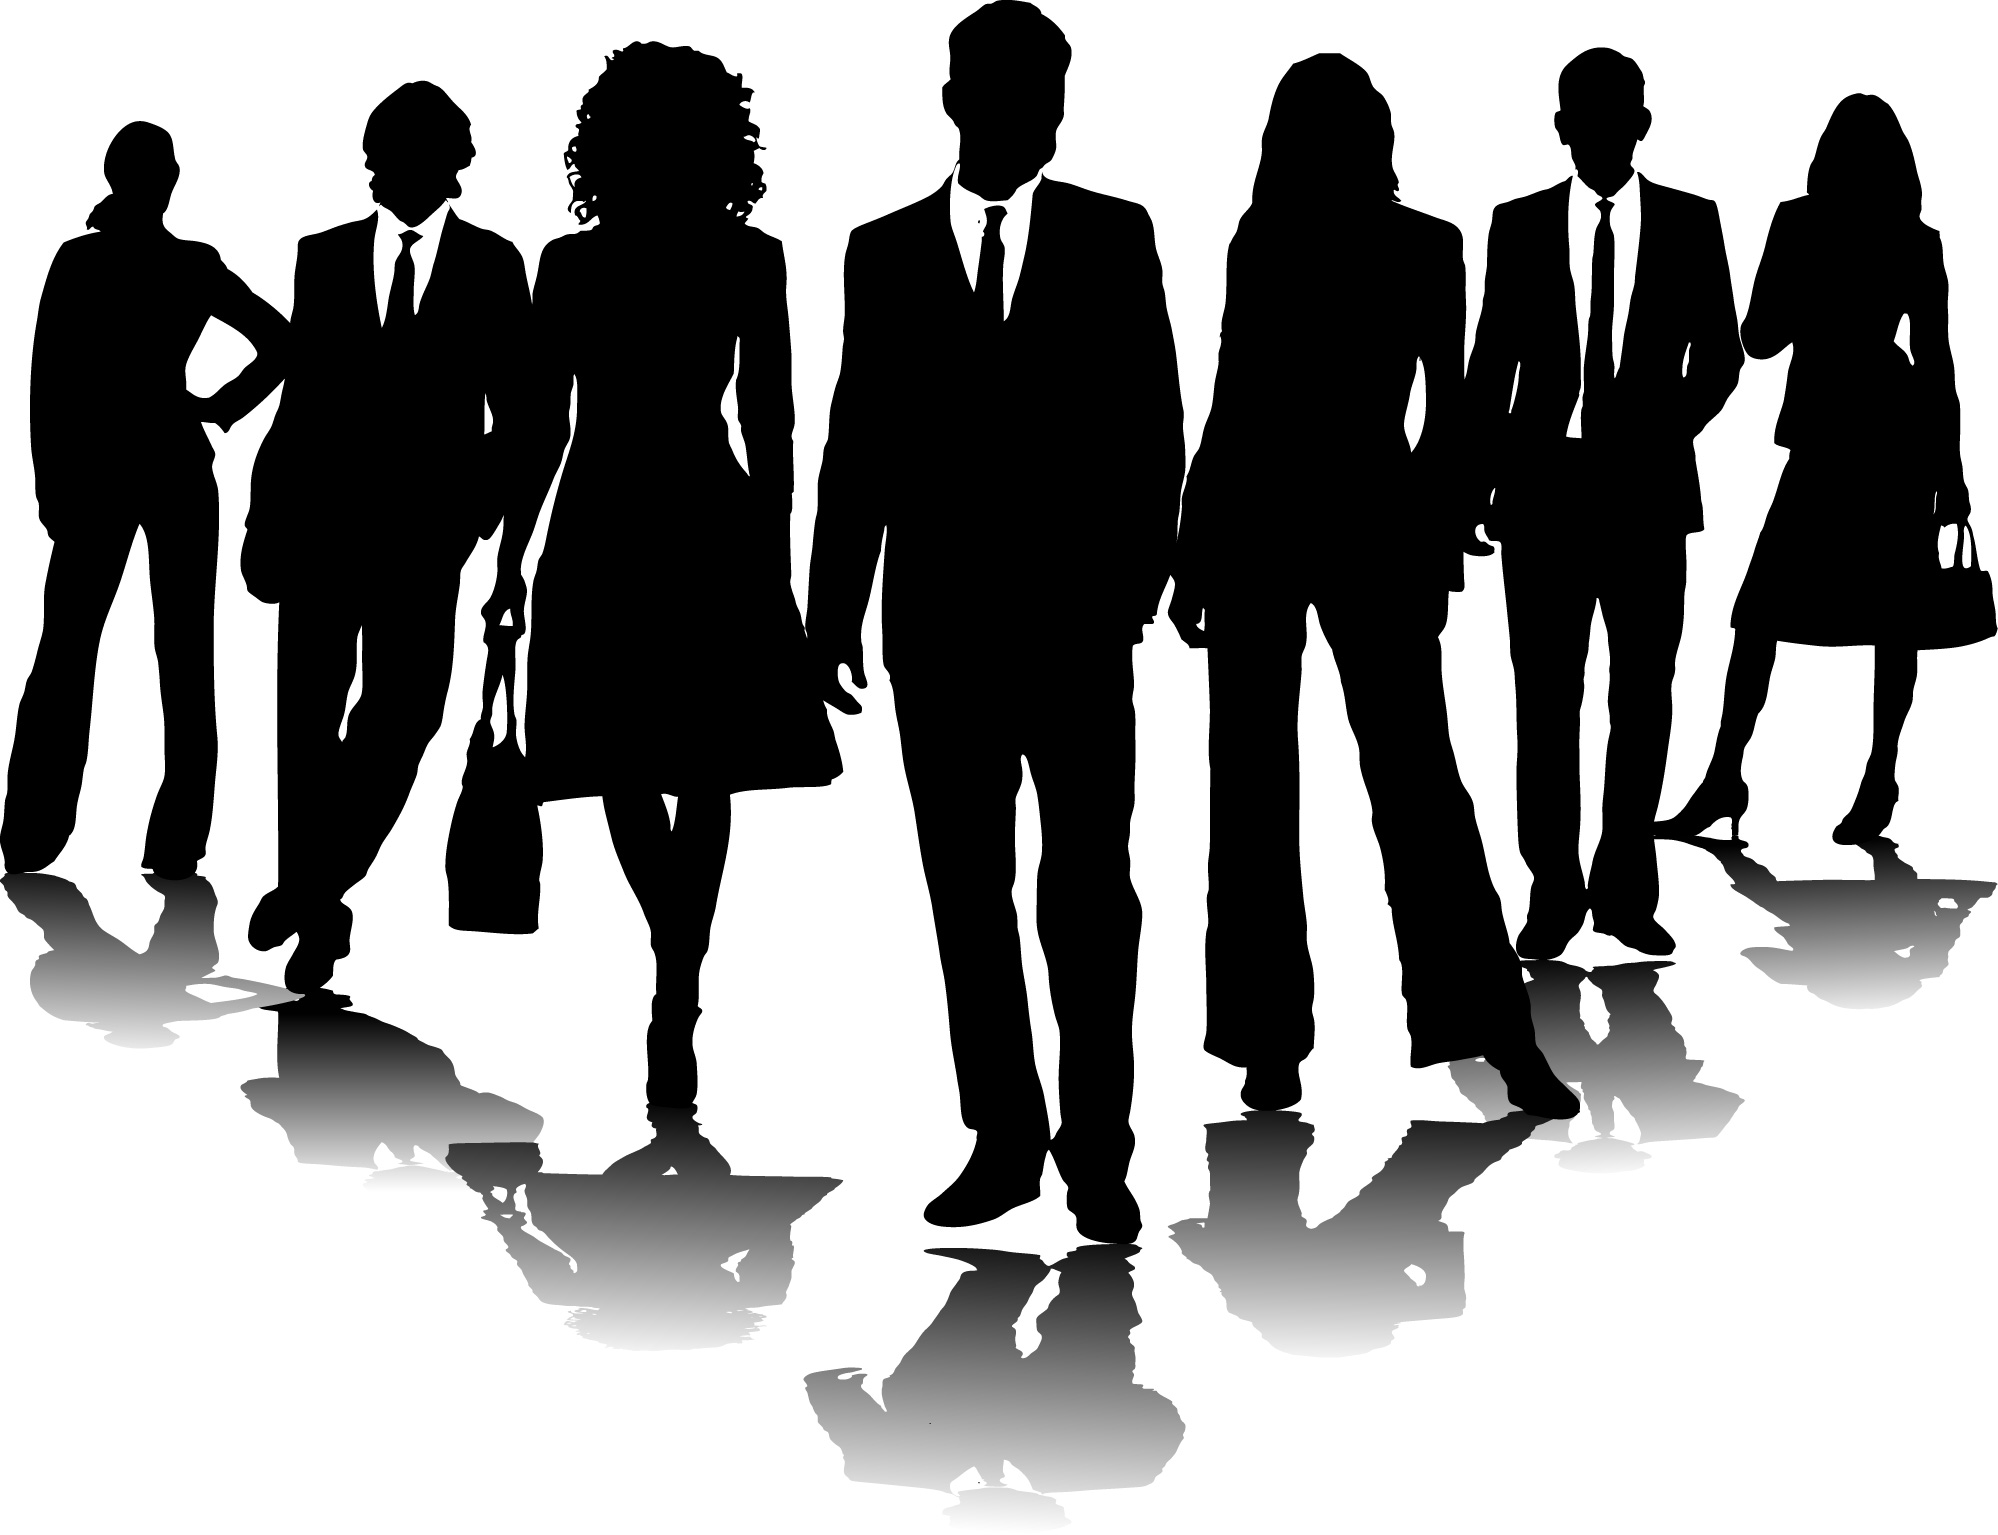 seminar-clipart-people-silhoette